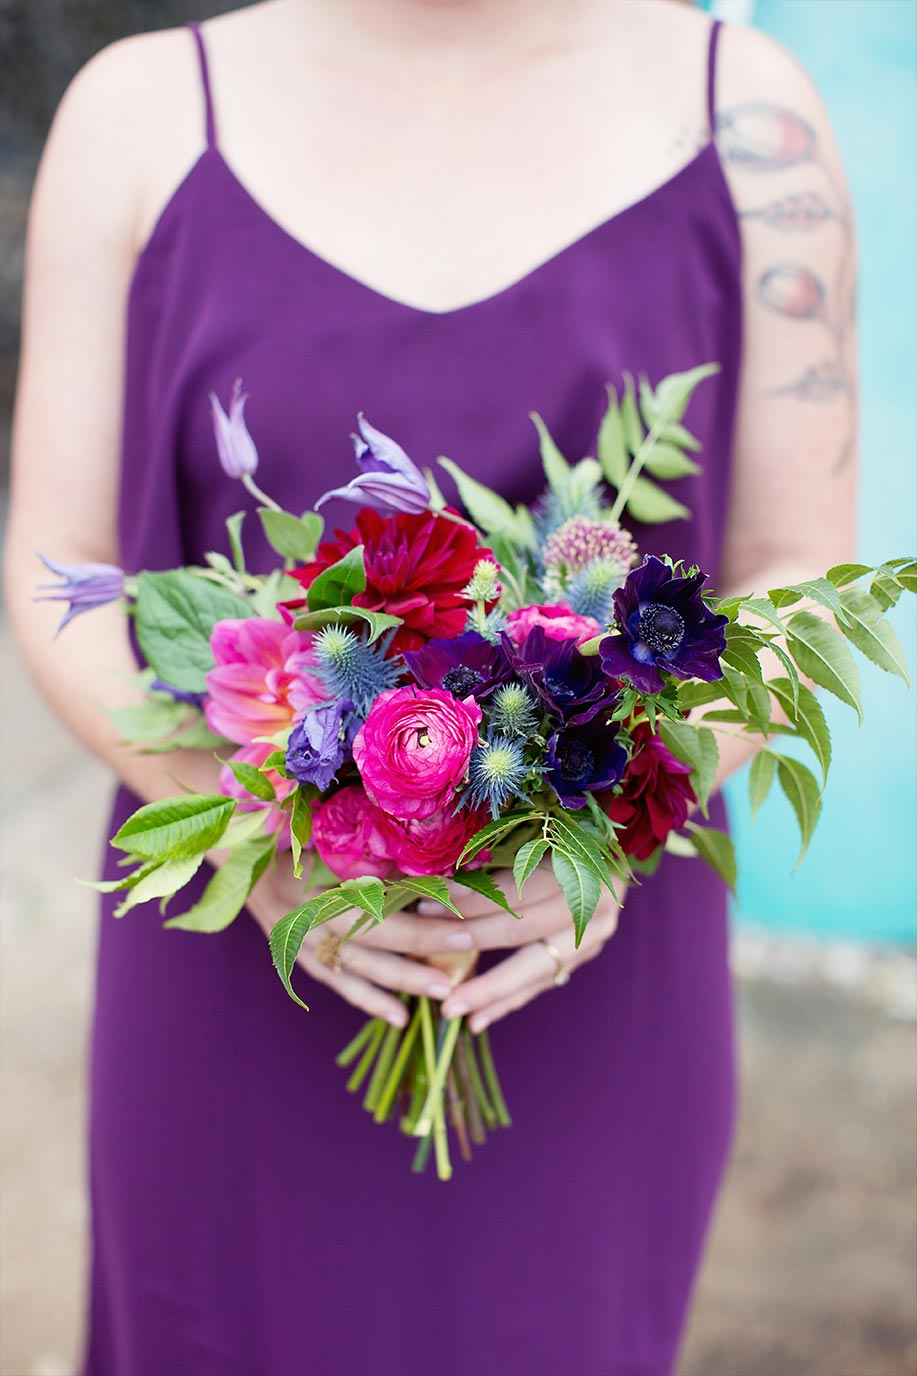 Pink and purple bridesmaid bouquet and purple dress